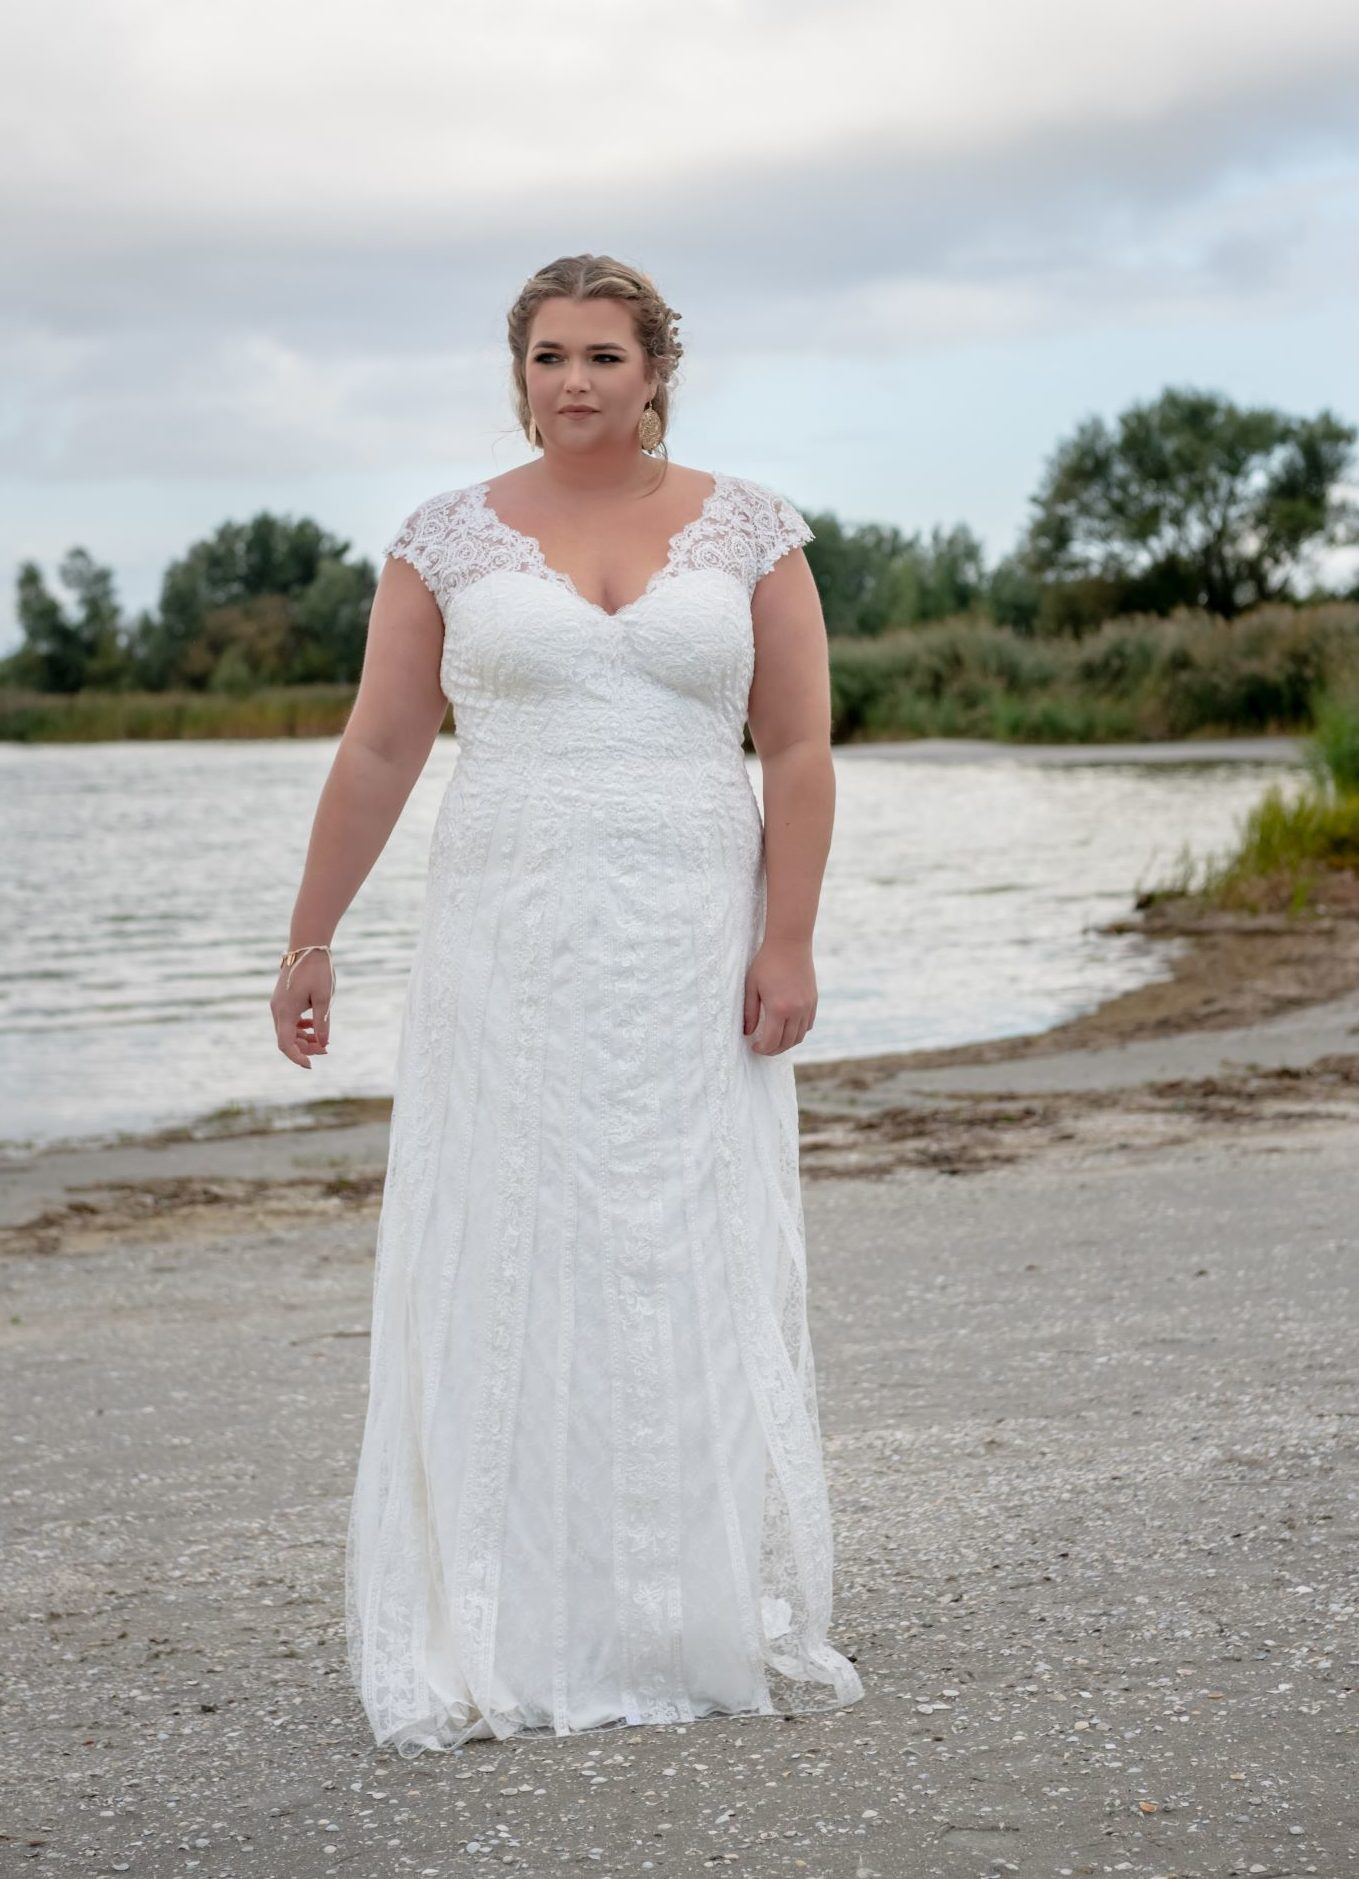 brautatelier ried-curvy bride collection-bridalstar-Glennis-fit and flair-vorne-1-min